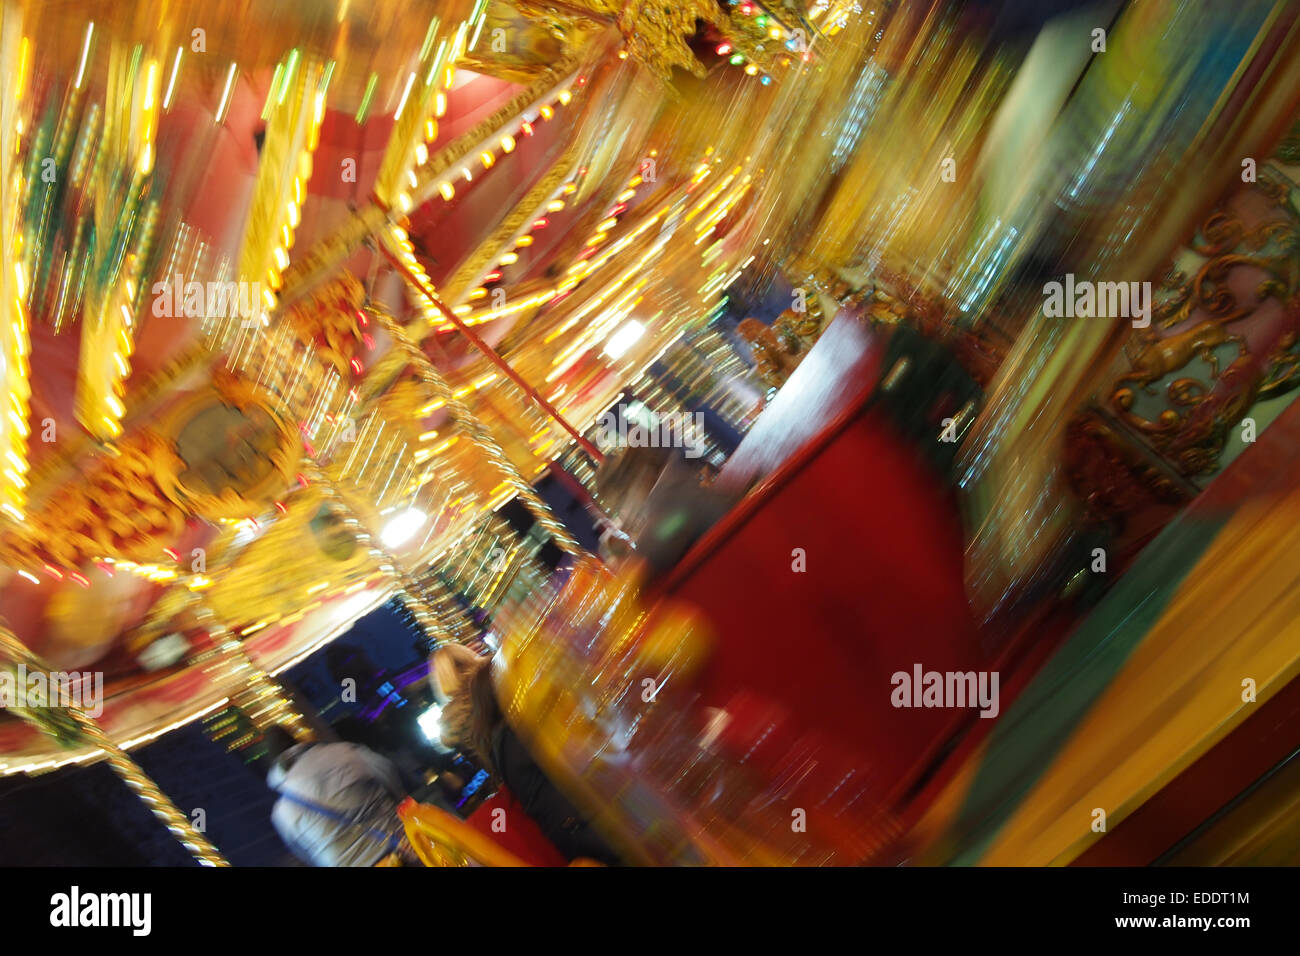 Carousel at the Christmas Funfair at Leicester Square in London - Stock Image